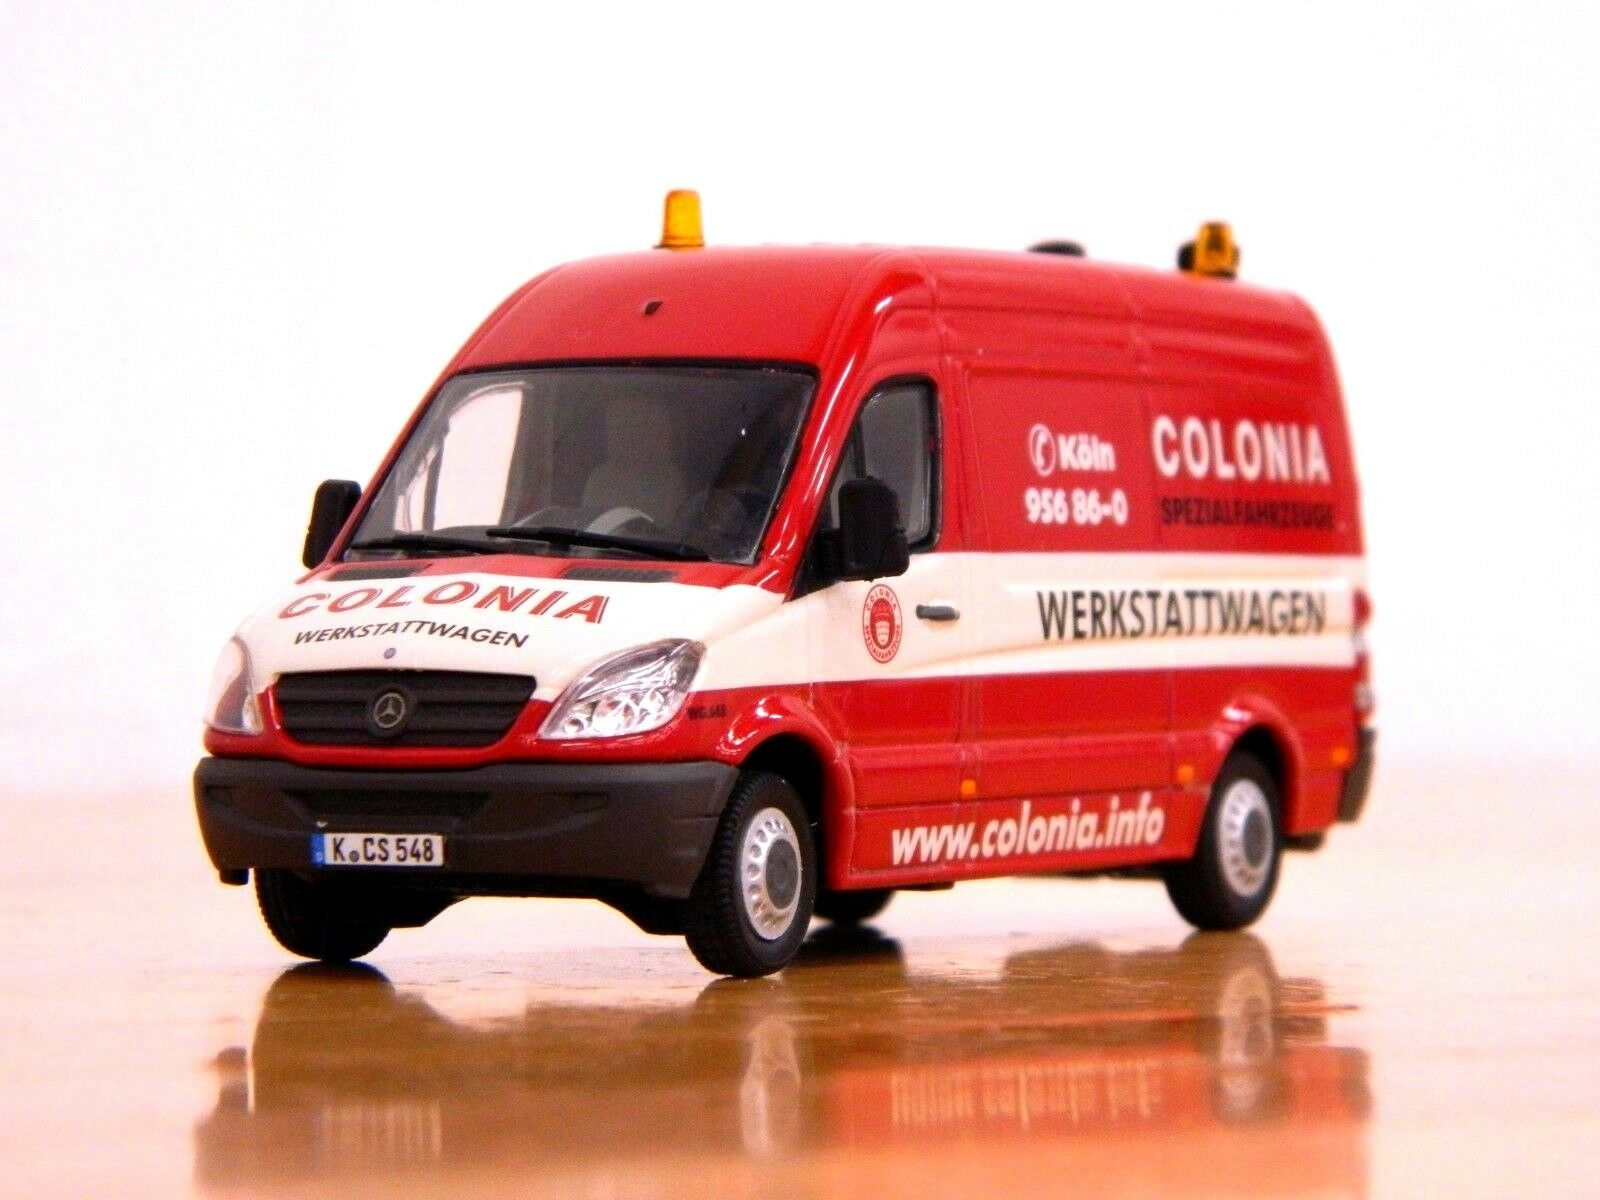 Wsi 02-1783  colonia  mercedes - benz - sprinter van 1  50 bf3 mb